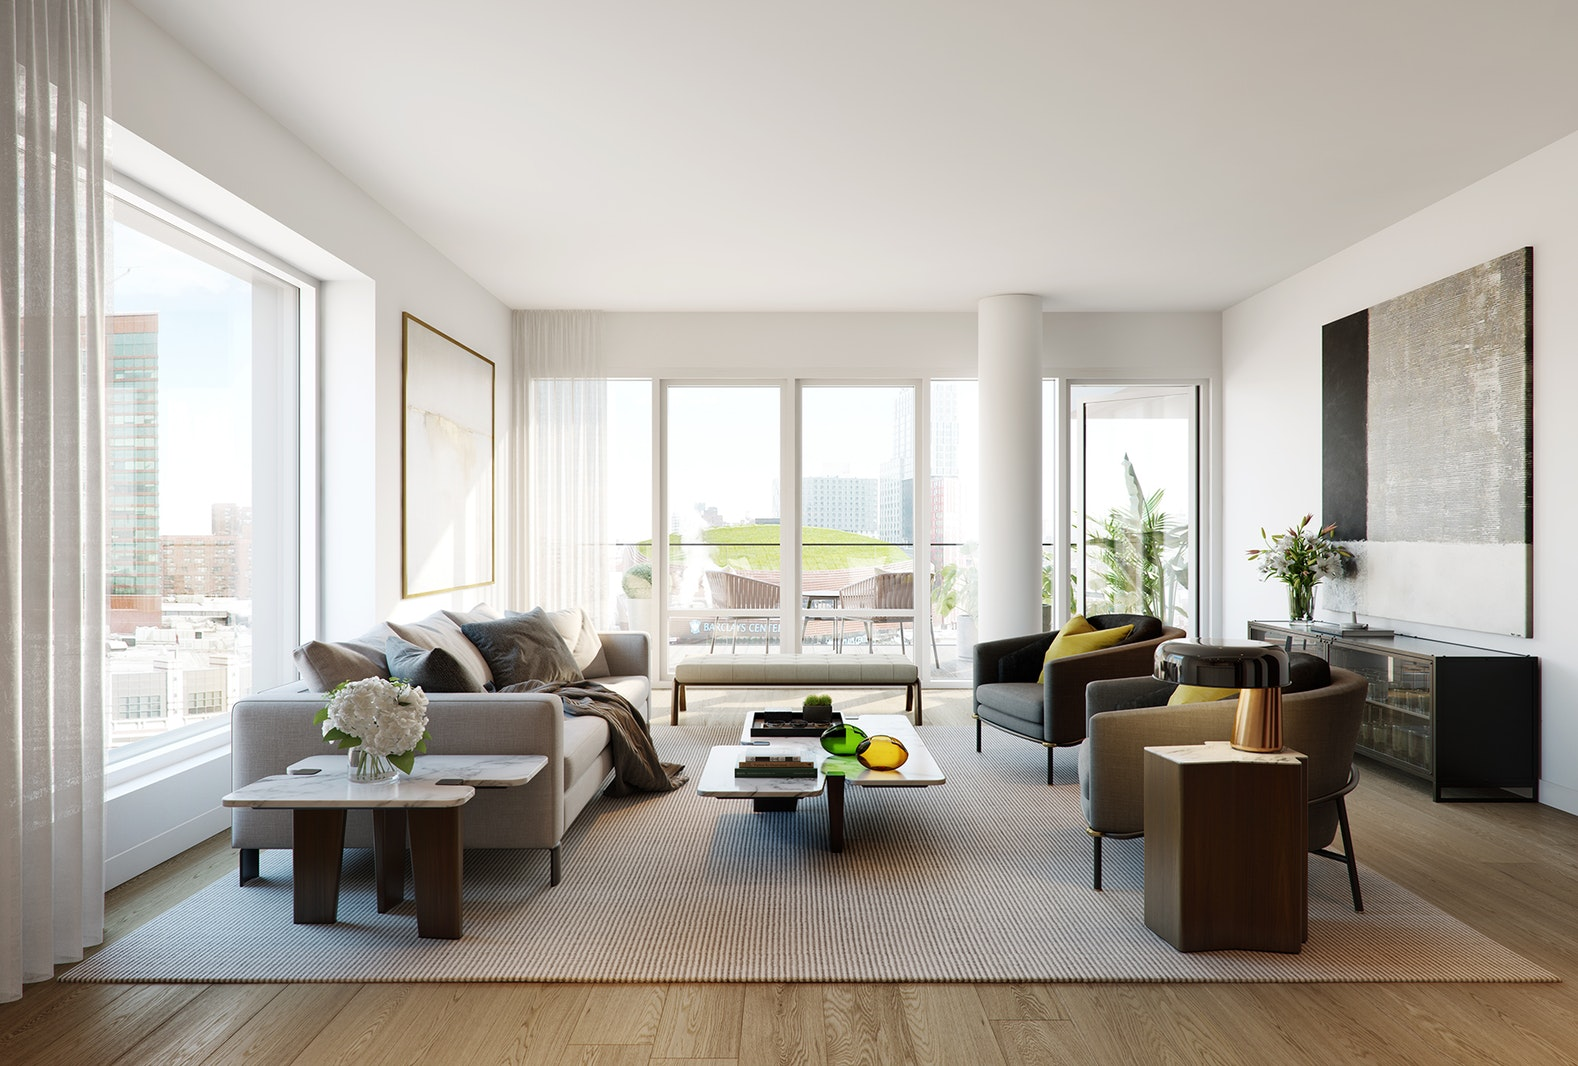 561 Pacific Street 704, Boerum Hill, Brooklyn, NY, 11217, $2,695,000, Property For Sale, Halstead Real Estate, Photo 1